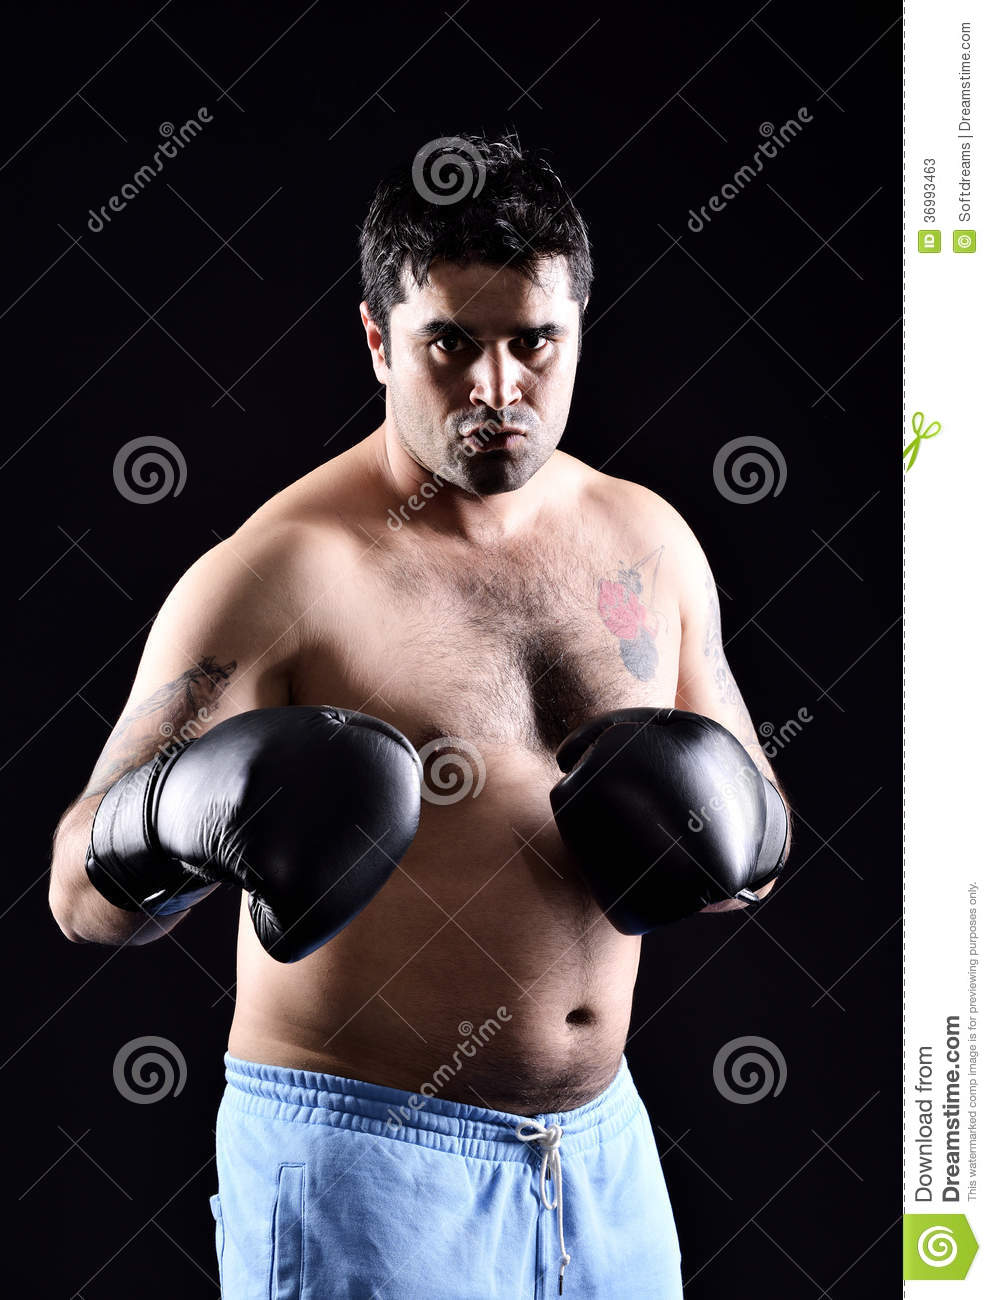 Boxing Boxer Stock Photos - Image: 36993463 Angry Black Woman Face